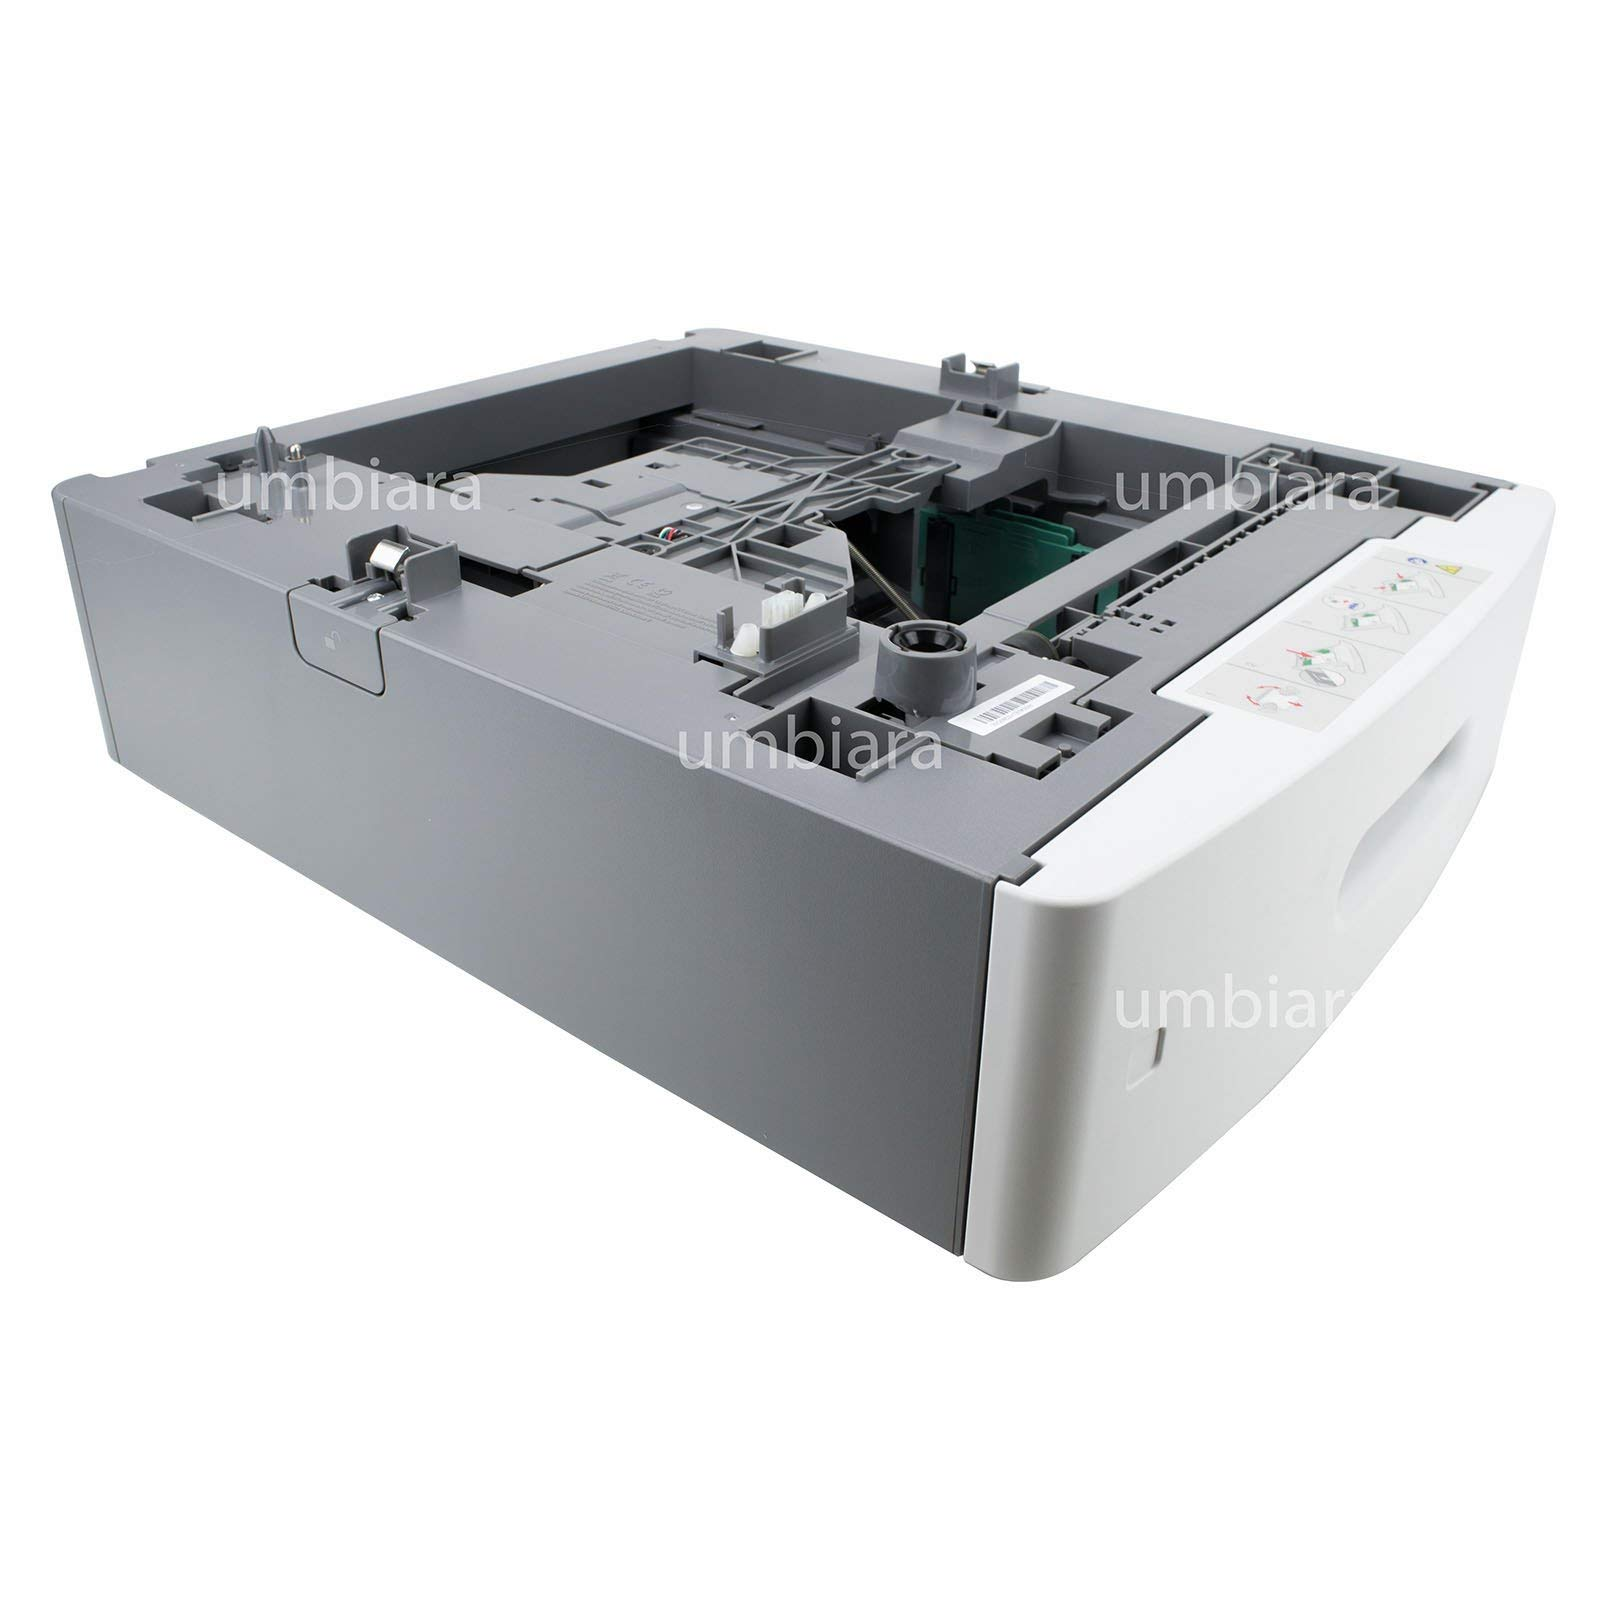 Refurbished Paper Tray 30G0802 for Lexmark T650 T652 T654 Series Printers 40X4469 30G0802 with 90-Day Warranty by Lexmark (Image #1)